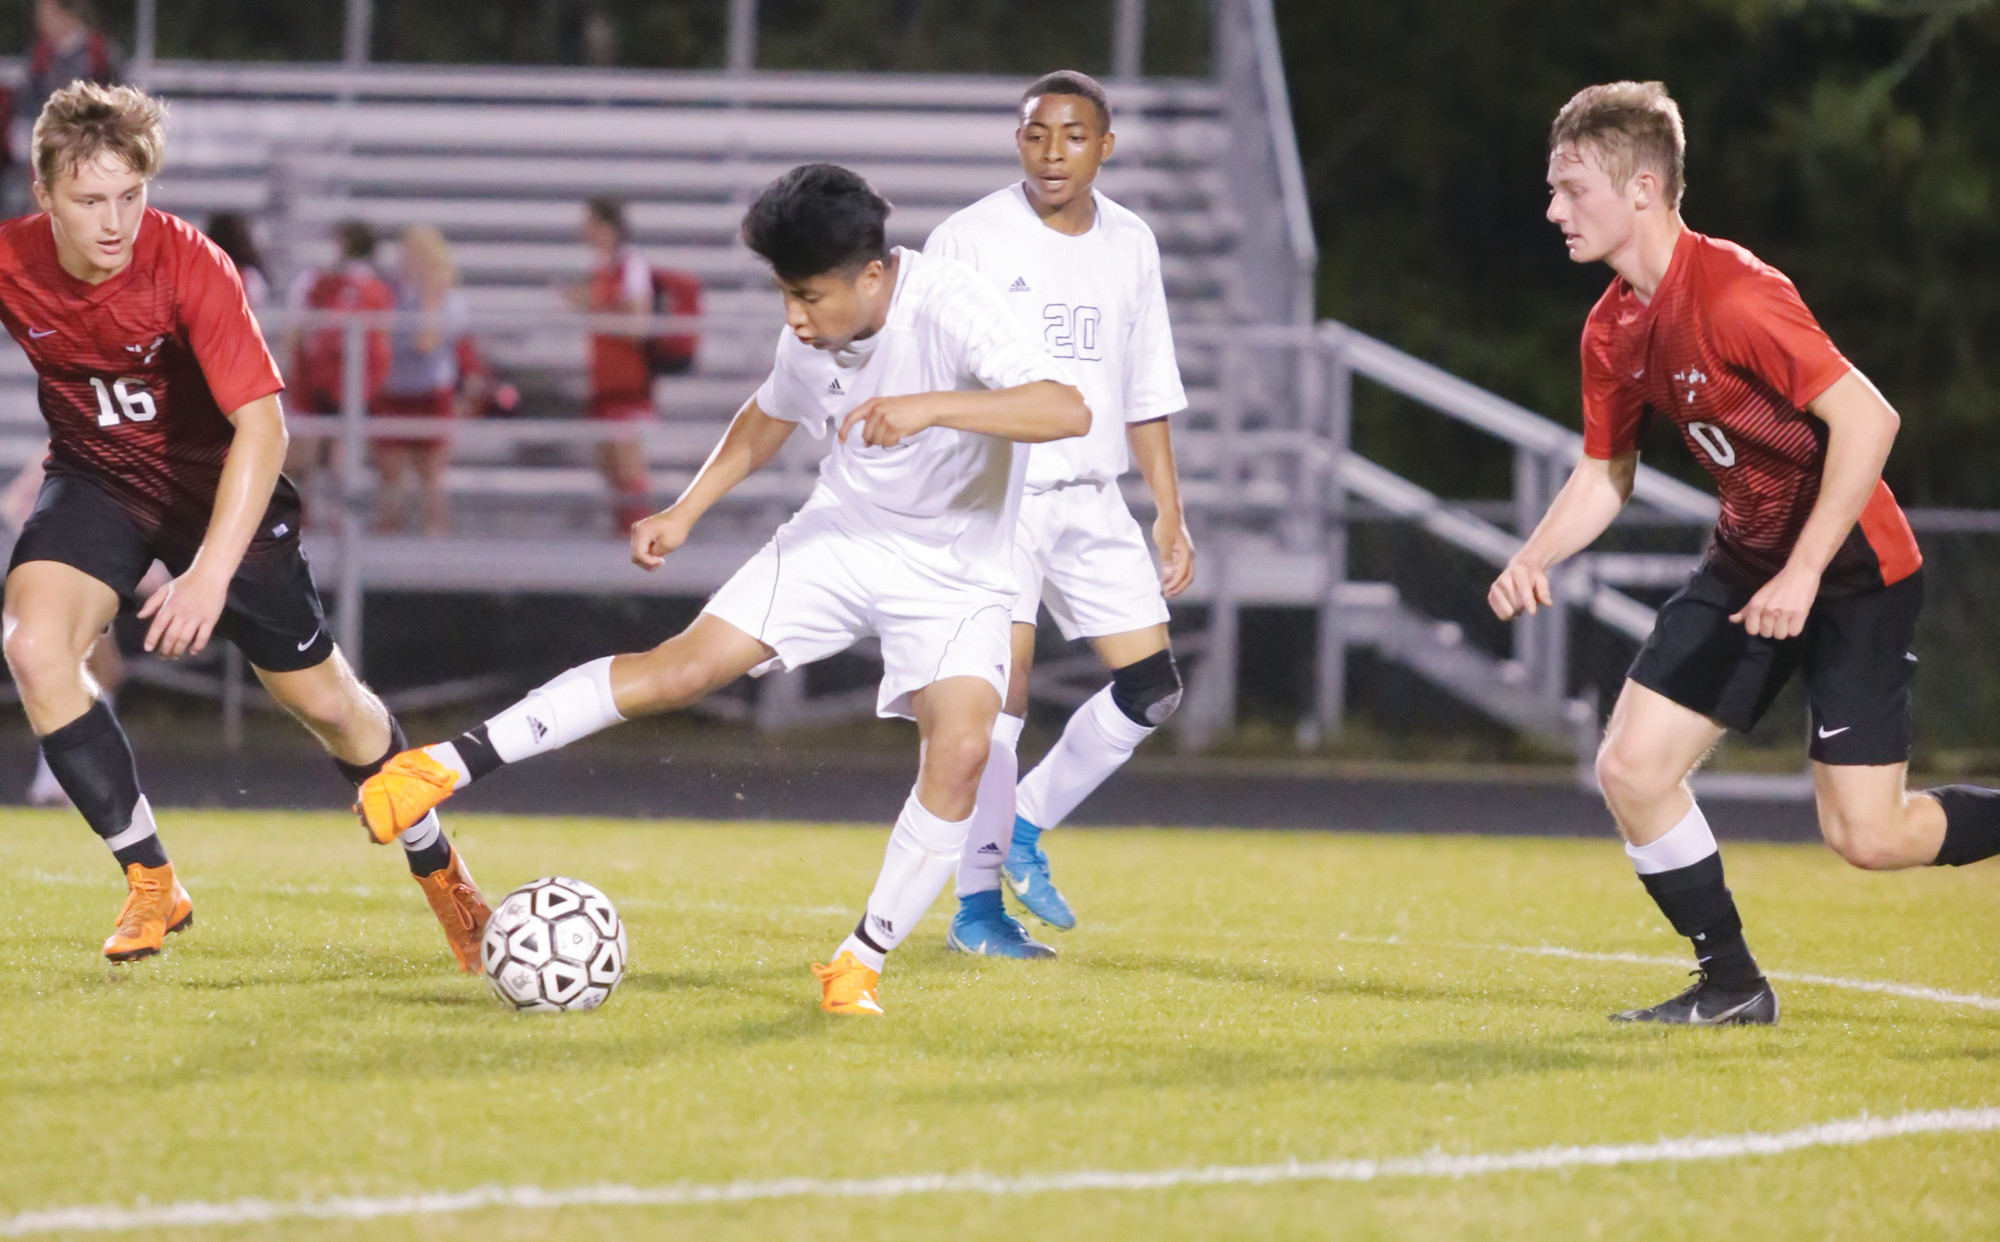 Crestwood's Luis Gutierez-Mendoza works the ball in traffic as teammate Deontay Singleton looks on and a pair of Hartsville defenders pursue during the Knights' 2-0 loss to the Foxes on Friday at the Crestwood field.